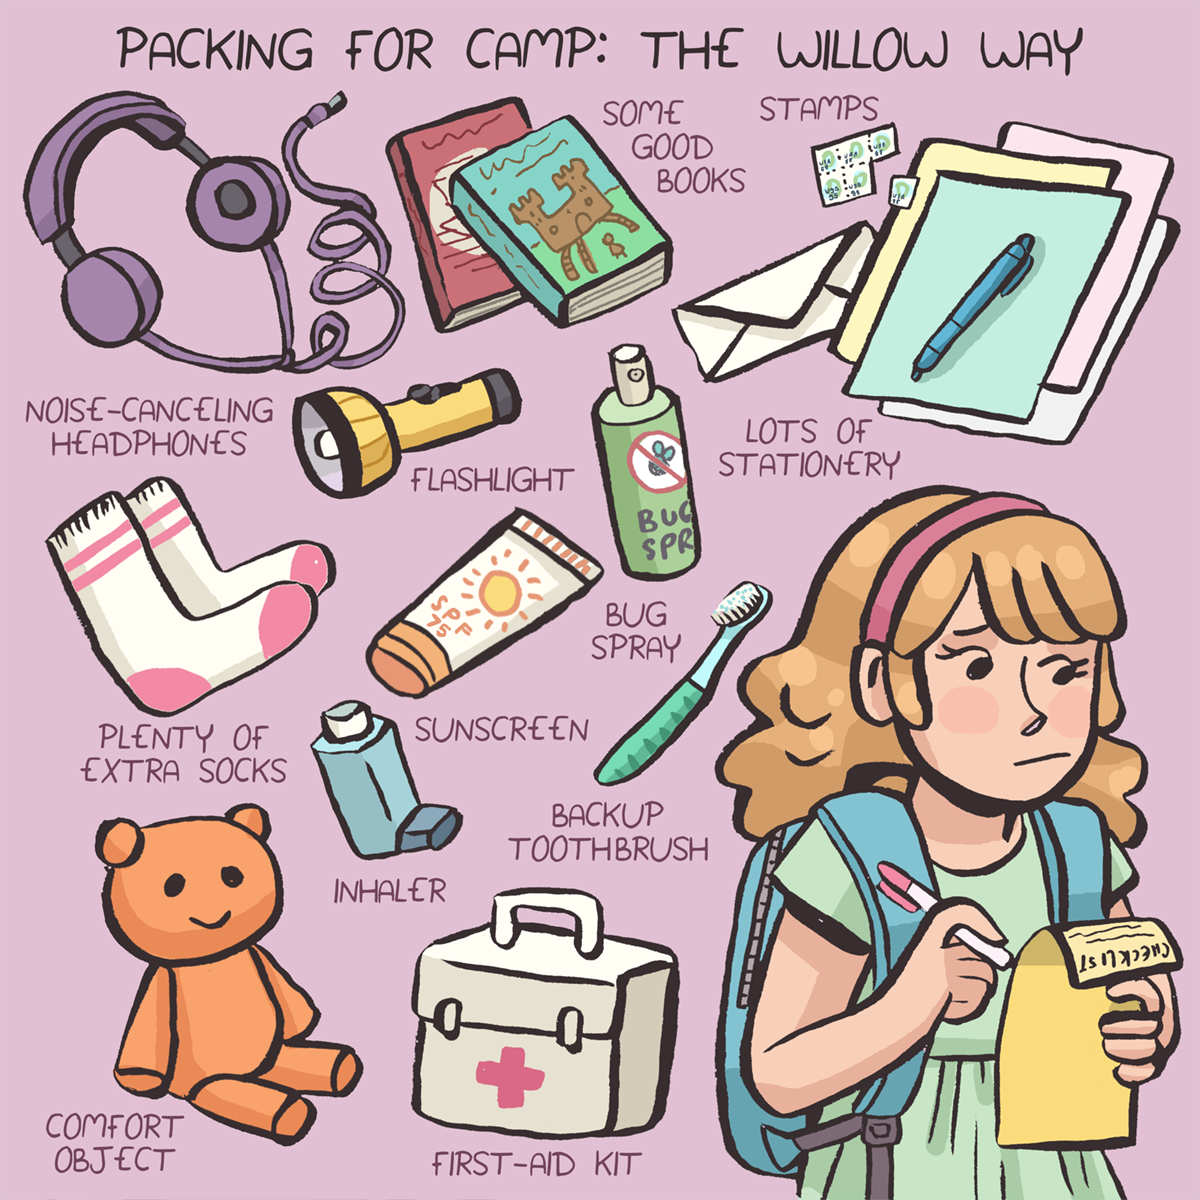 packingforcamp-thewillowway.png